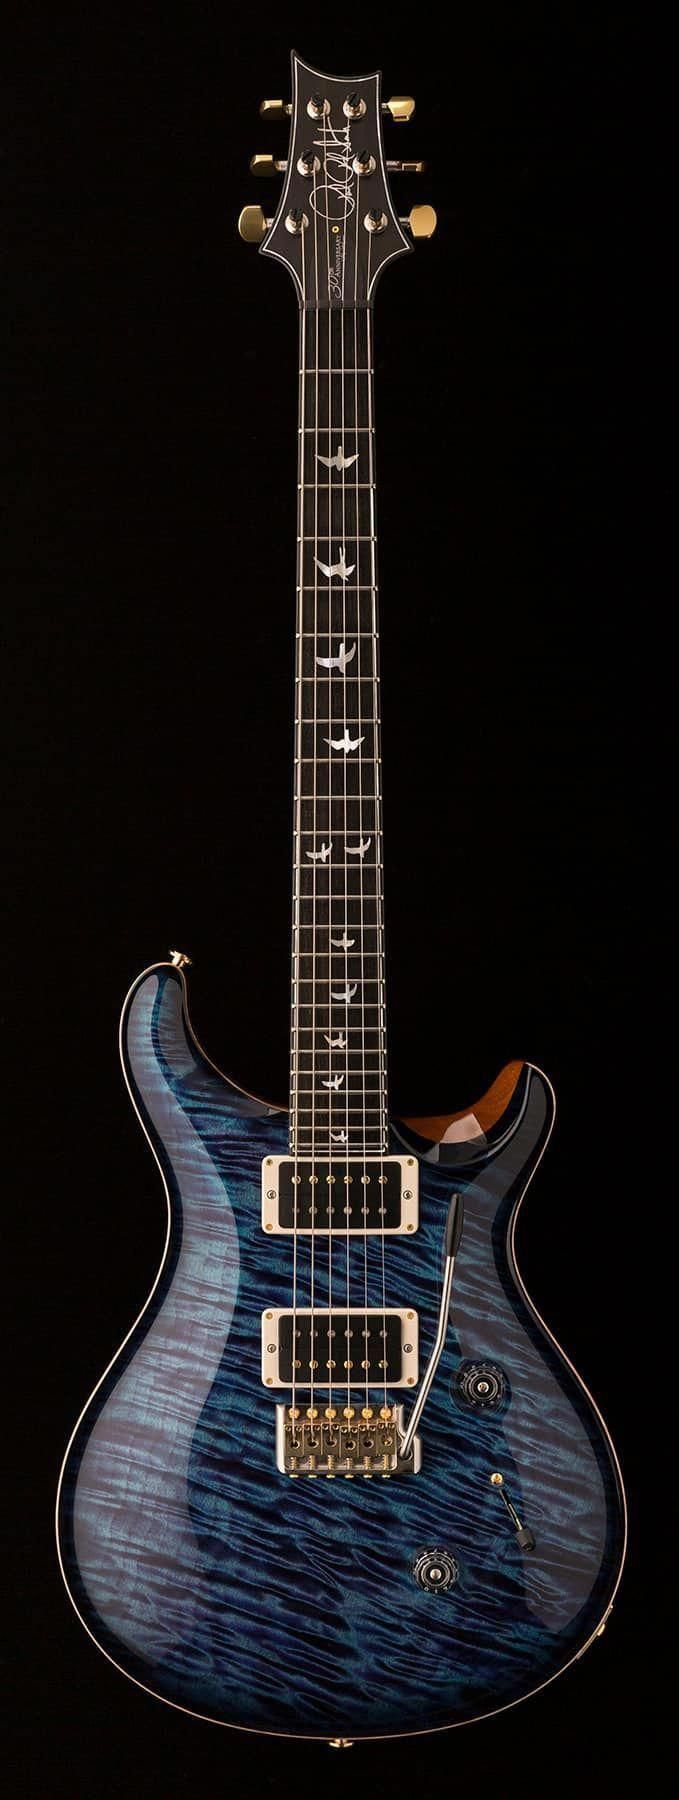 PRS Guitar Hat PRS Guitar Wood Library #guitarplayer #guitarlessons #PRSGuitars #prsguitar PRS Guitar Hat PRS Guitar Wood Library #guitarplayer #guitarlessons #PRSGuitars #prsguitar PRS Guitar Hat PRS Guitar Wood Library #guitarplayer #guitarlessons #PRSGuitars #prsguitar PRS Guitar Hat PRS Guitar Wood Library #guitarplayer #guitarlessons #PRSGuitars #prsguitar